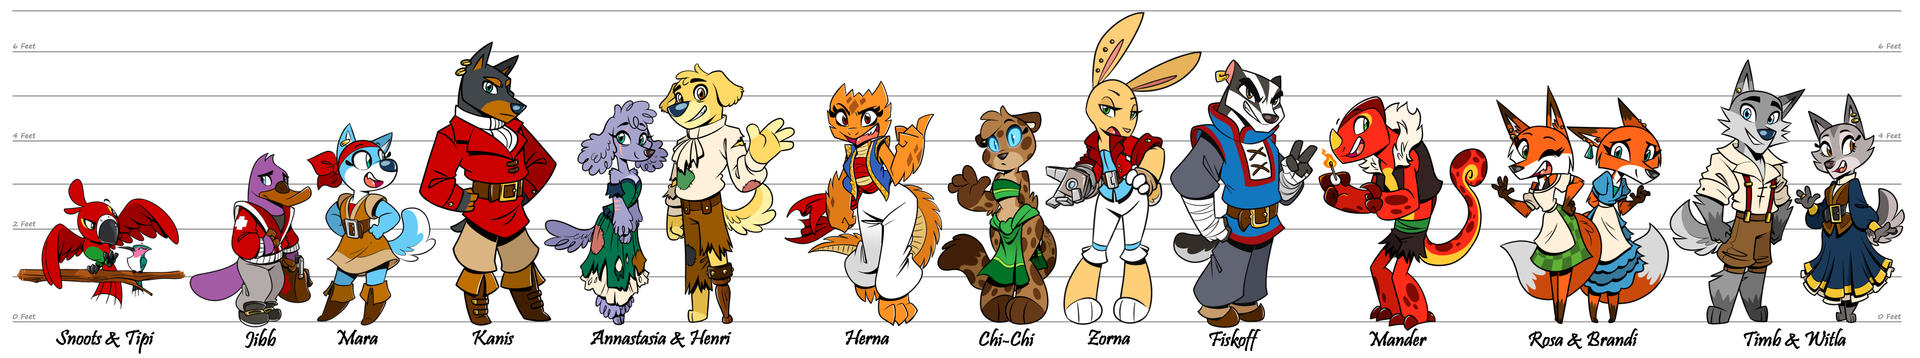 Starboard Character Size Comparison